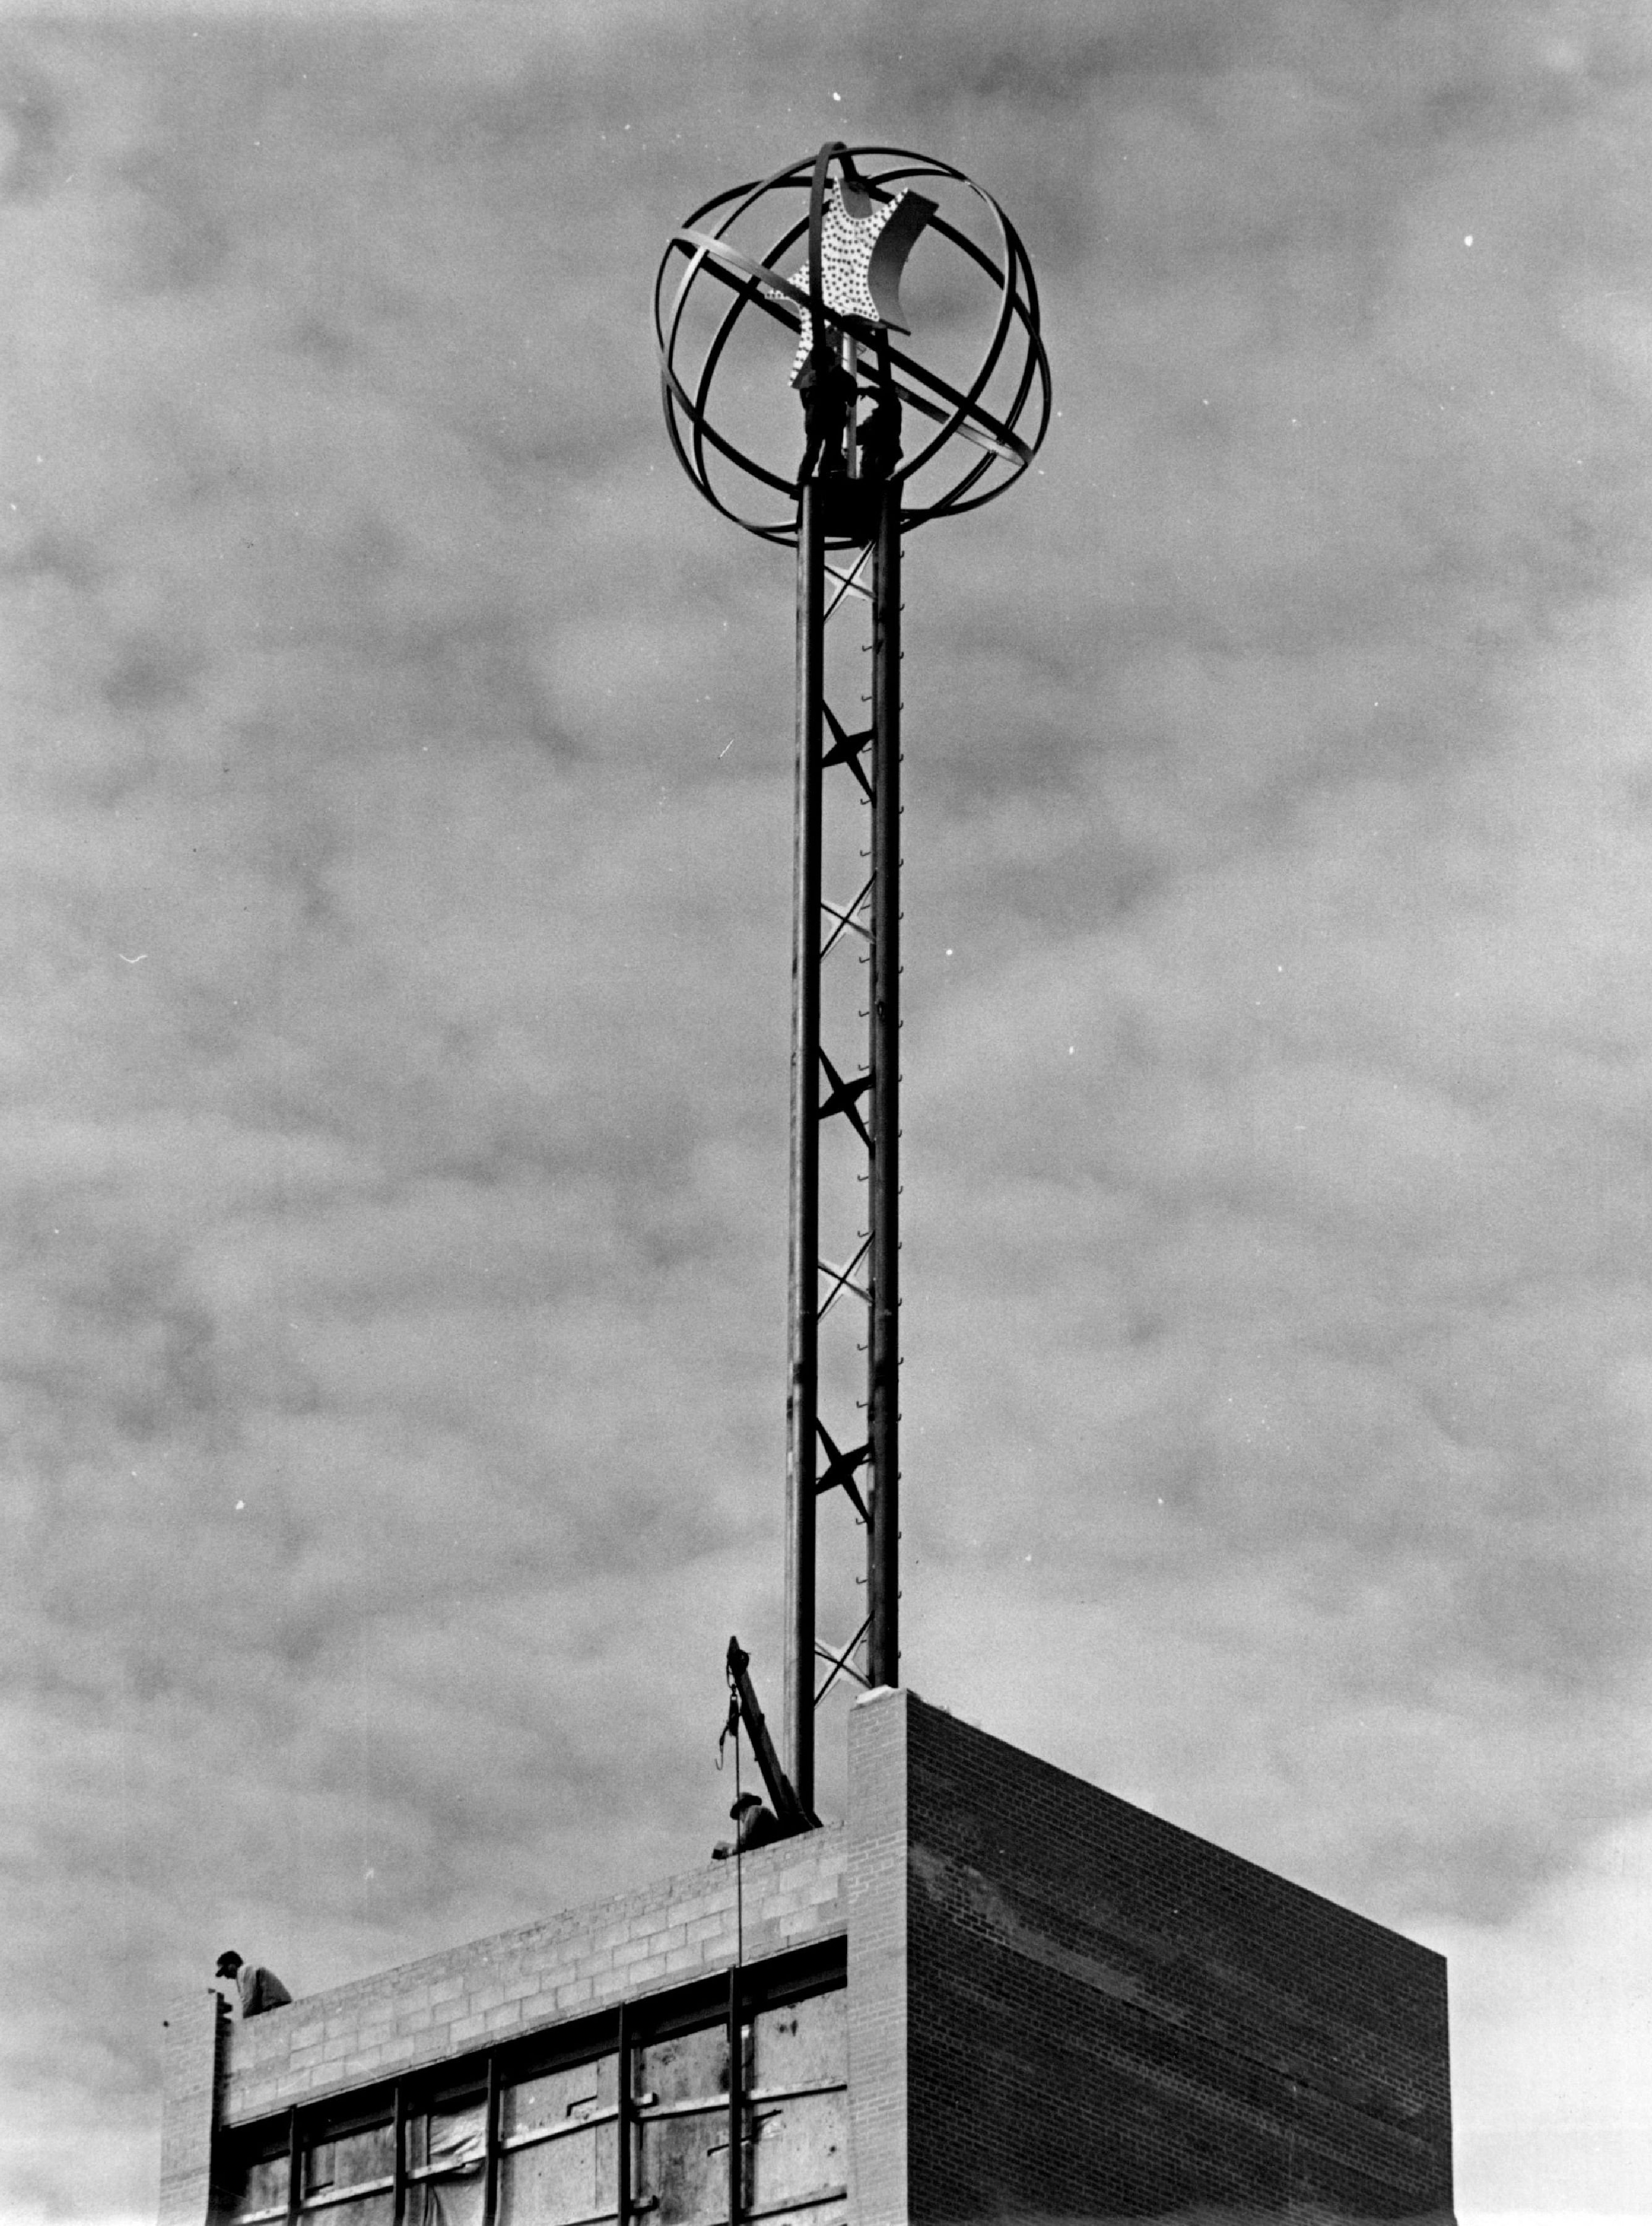 The Star of the North globe, 15 feet in diameter, sat atop a tower 70 feet above the roof of Northstar Center in 1962.